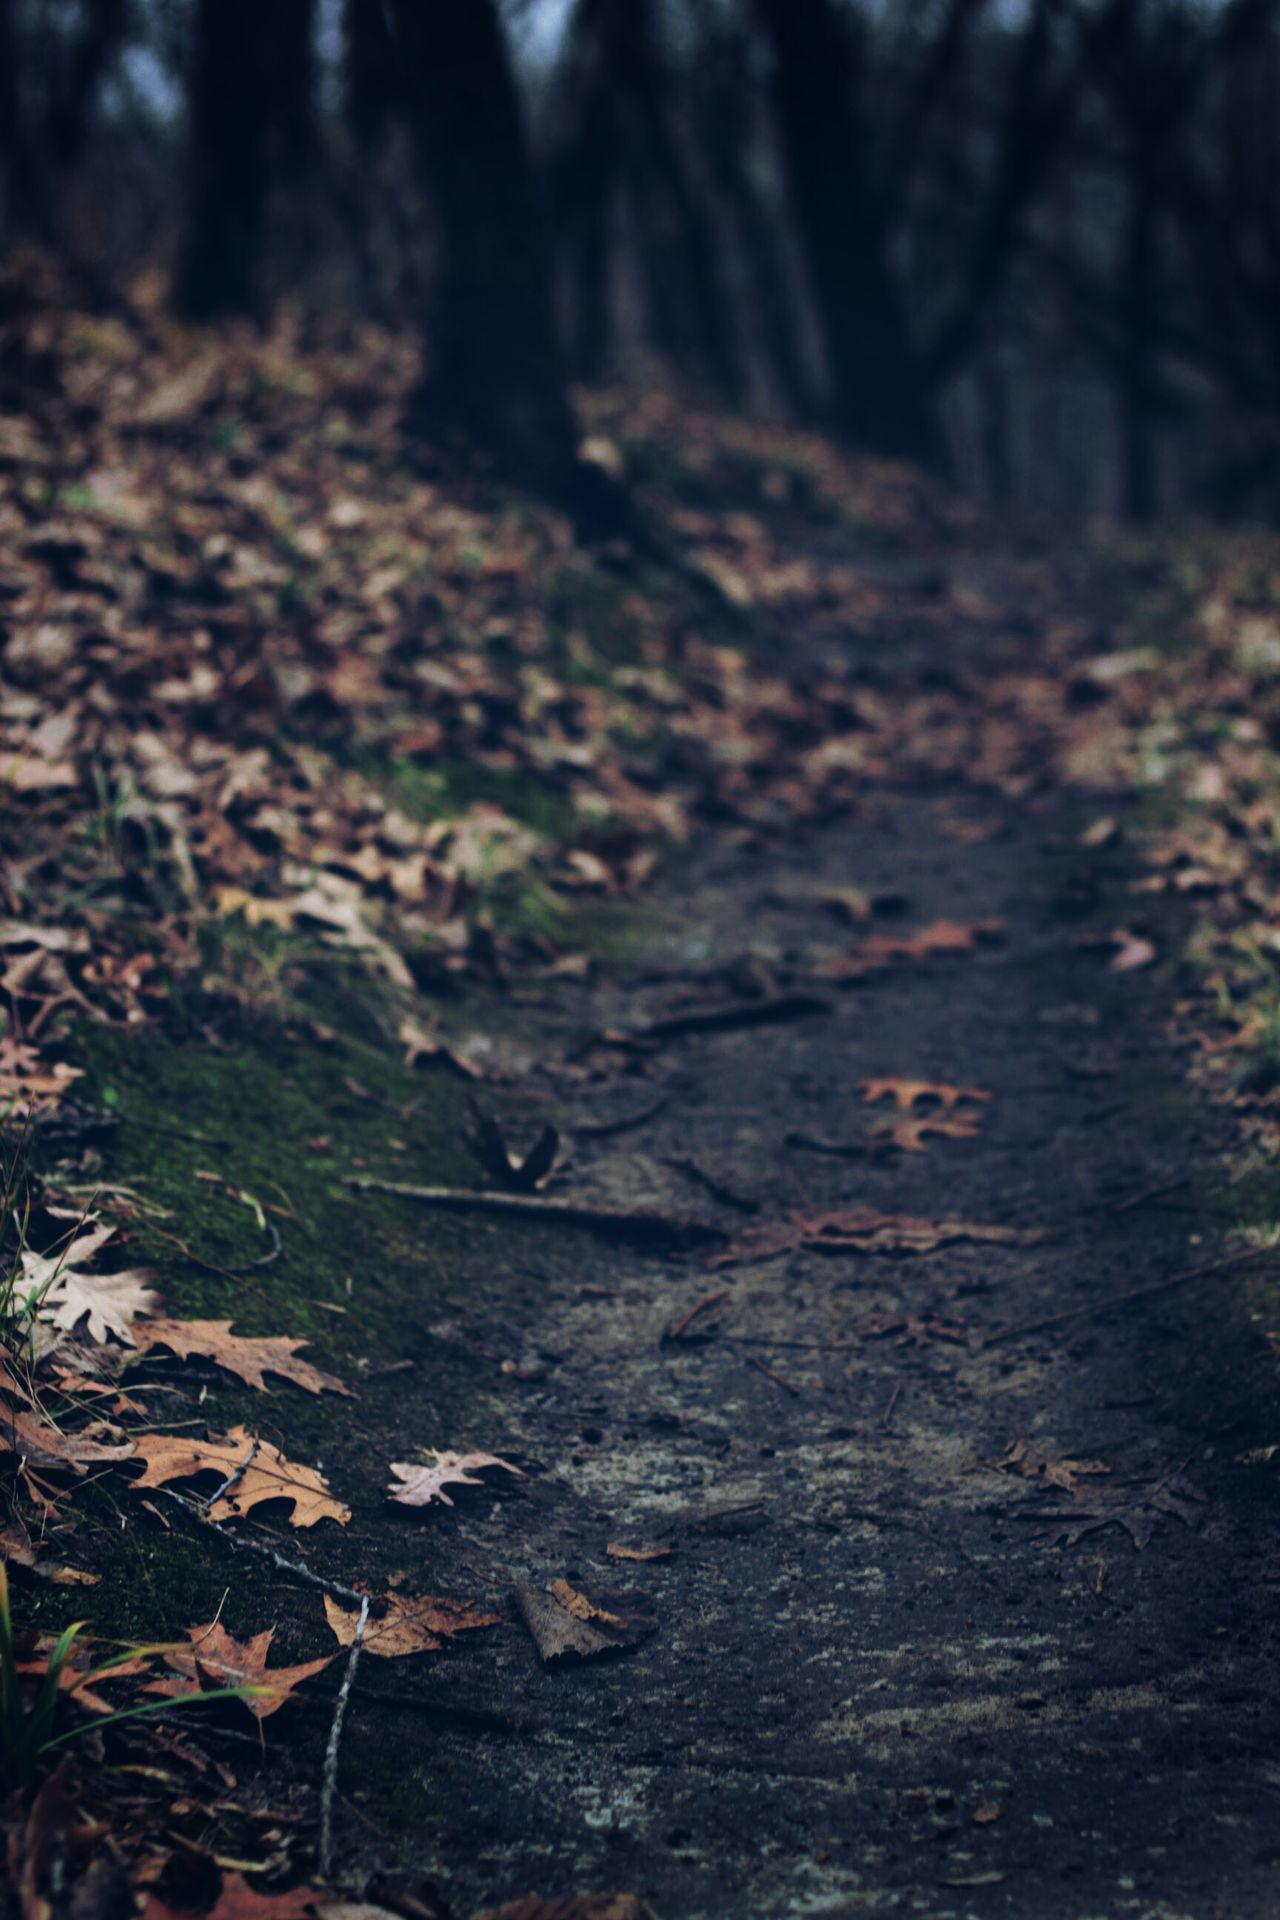 Into the woods Nature Leaf Tree Forest No People Outdoors Beauty In Nature EyeEm EyeEm Best Shots Bokeh Getting Inspired